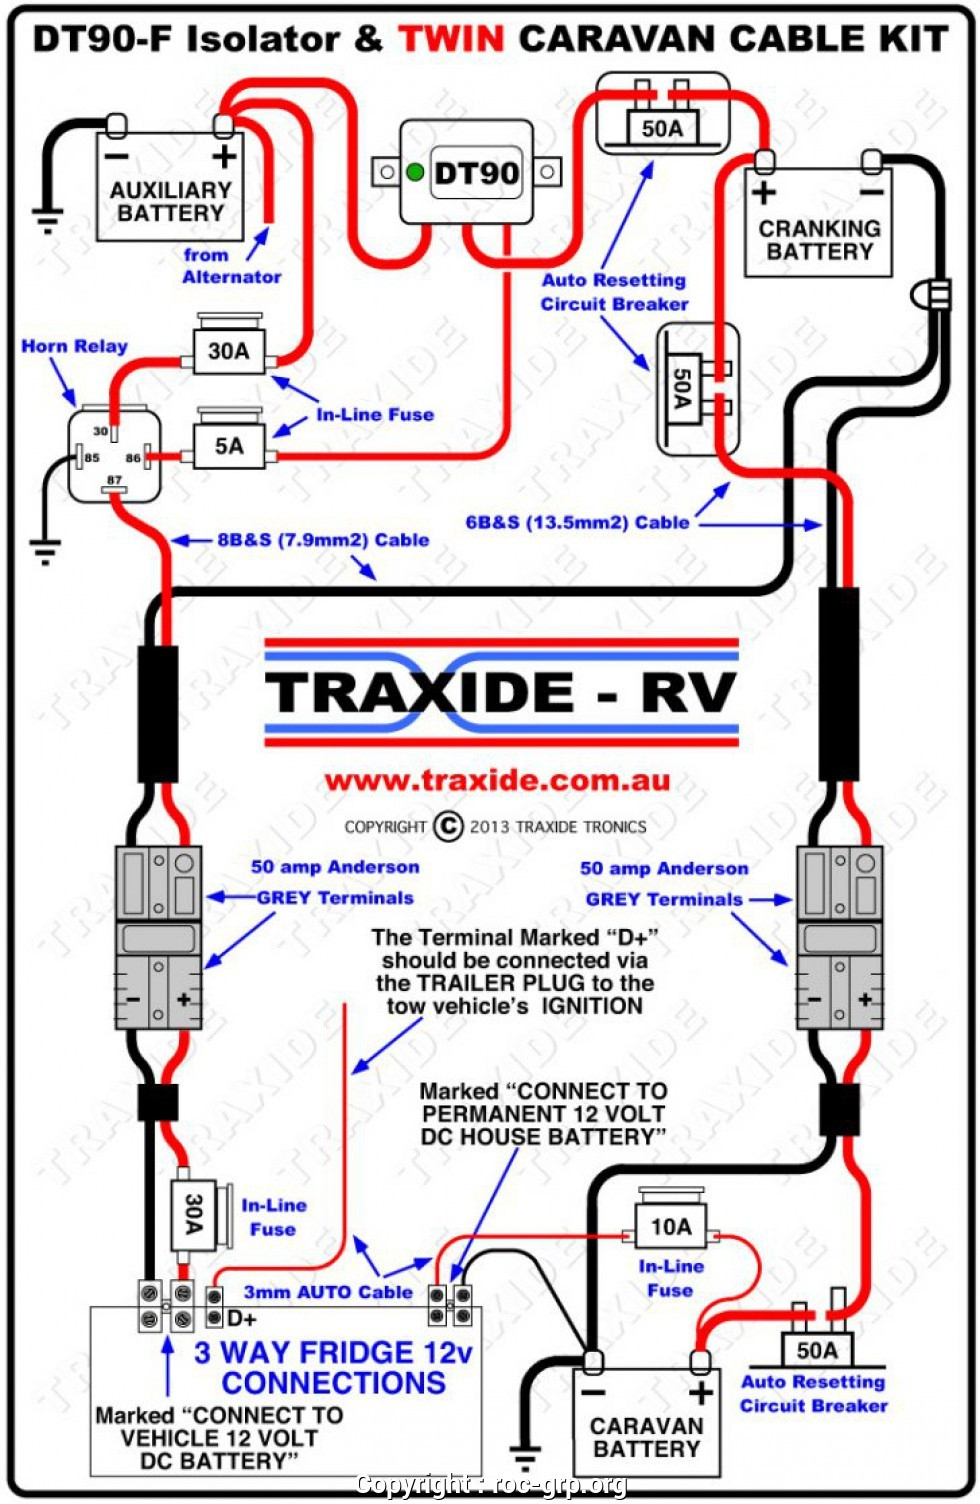 12 Pin Trailer Plug Wiring Diagram Somurich Of 12 Pin Caravan Plug - Trailer Wiring Diagram 12 Pin